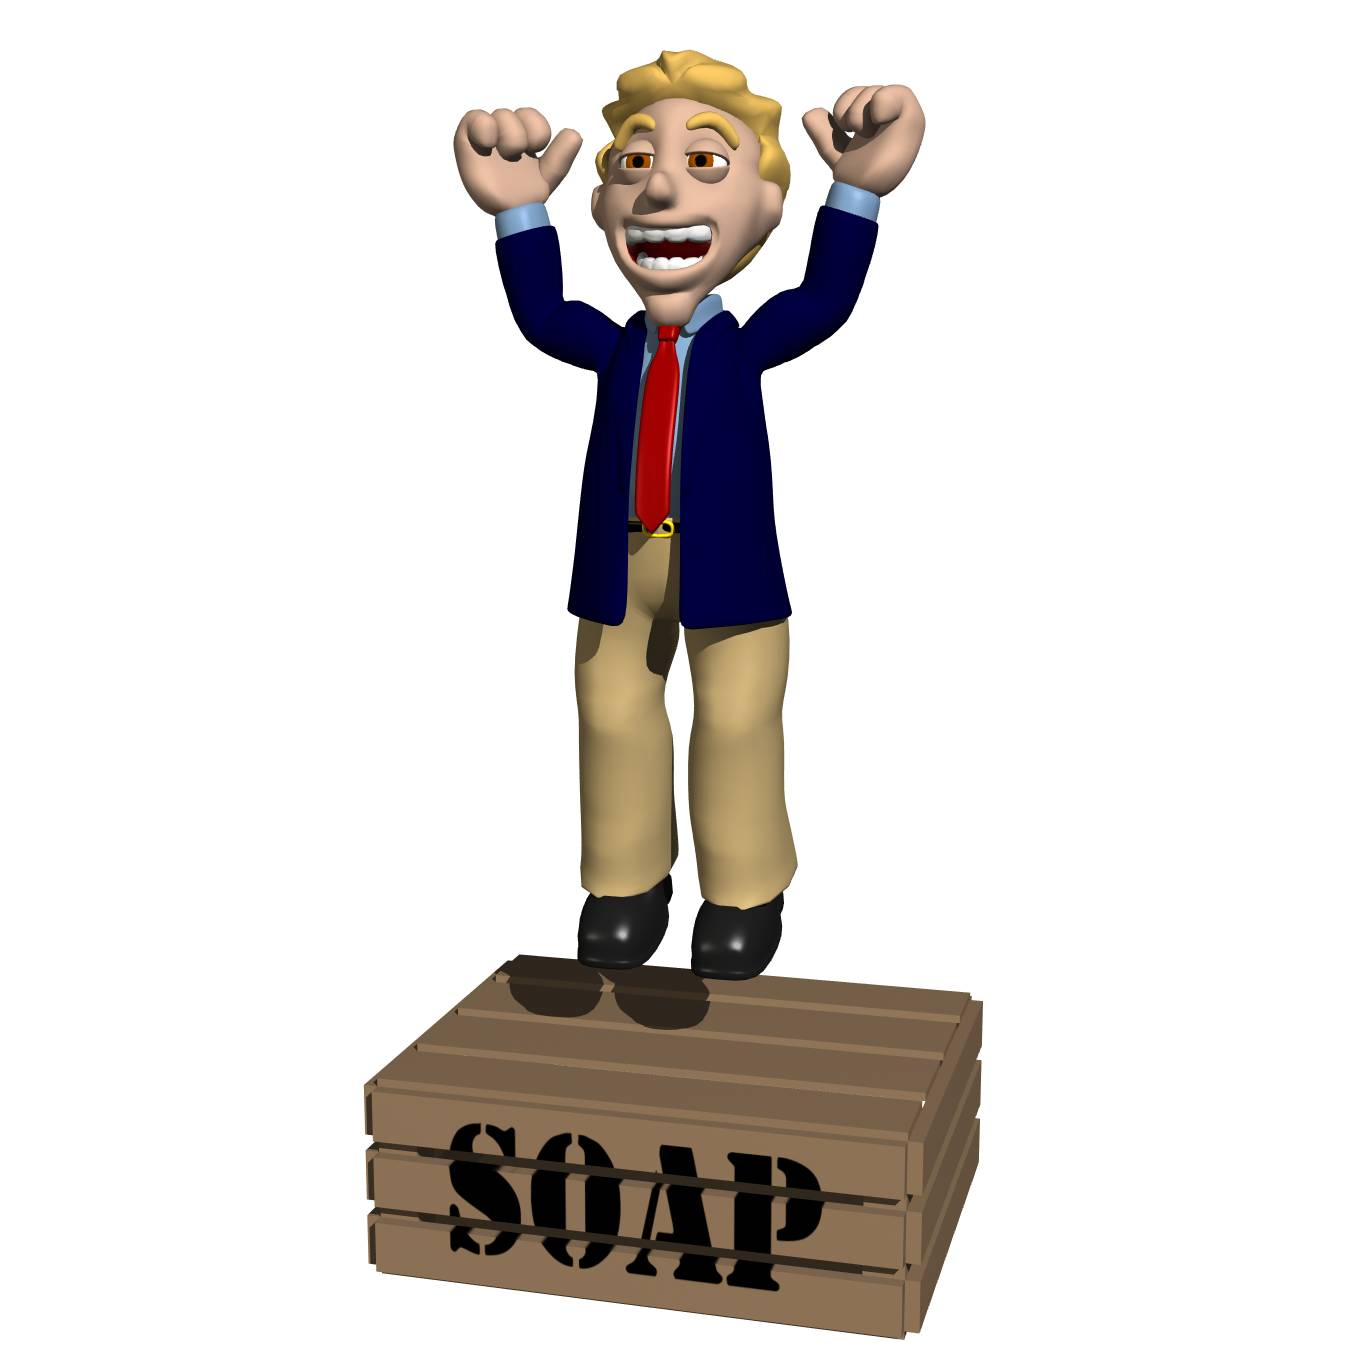 Soap box clipart.